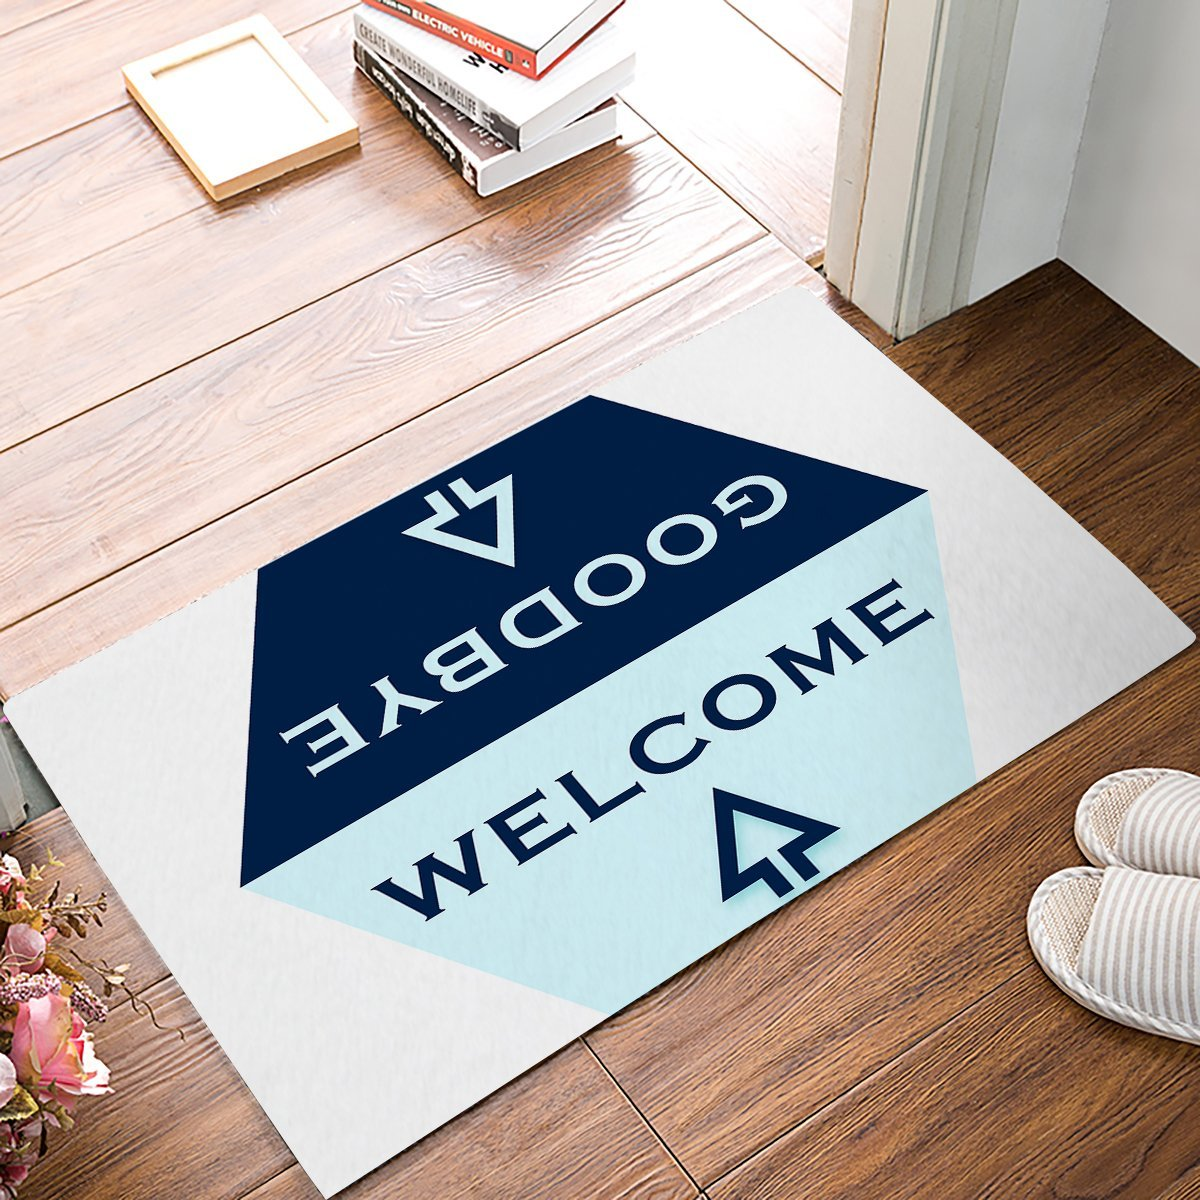 Light Blue And Navy Blue Hexagon Arrow Welcome Goodbye Greetings Pattern Symmetry Door Mats Kitchen Floor Bath Entrance Rug Mat